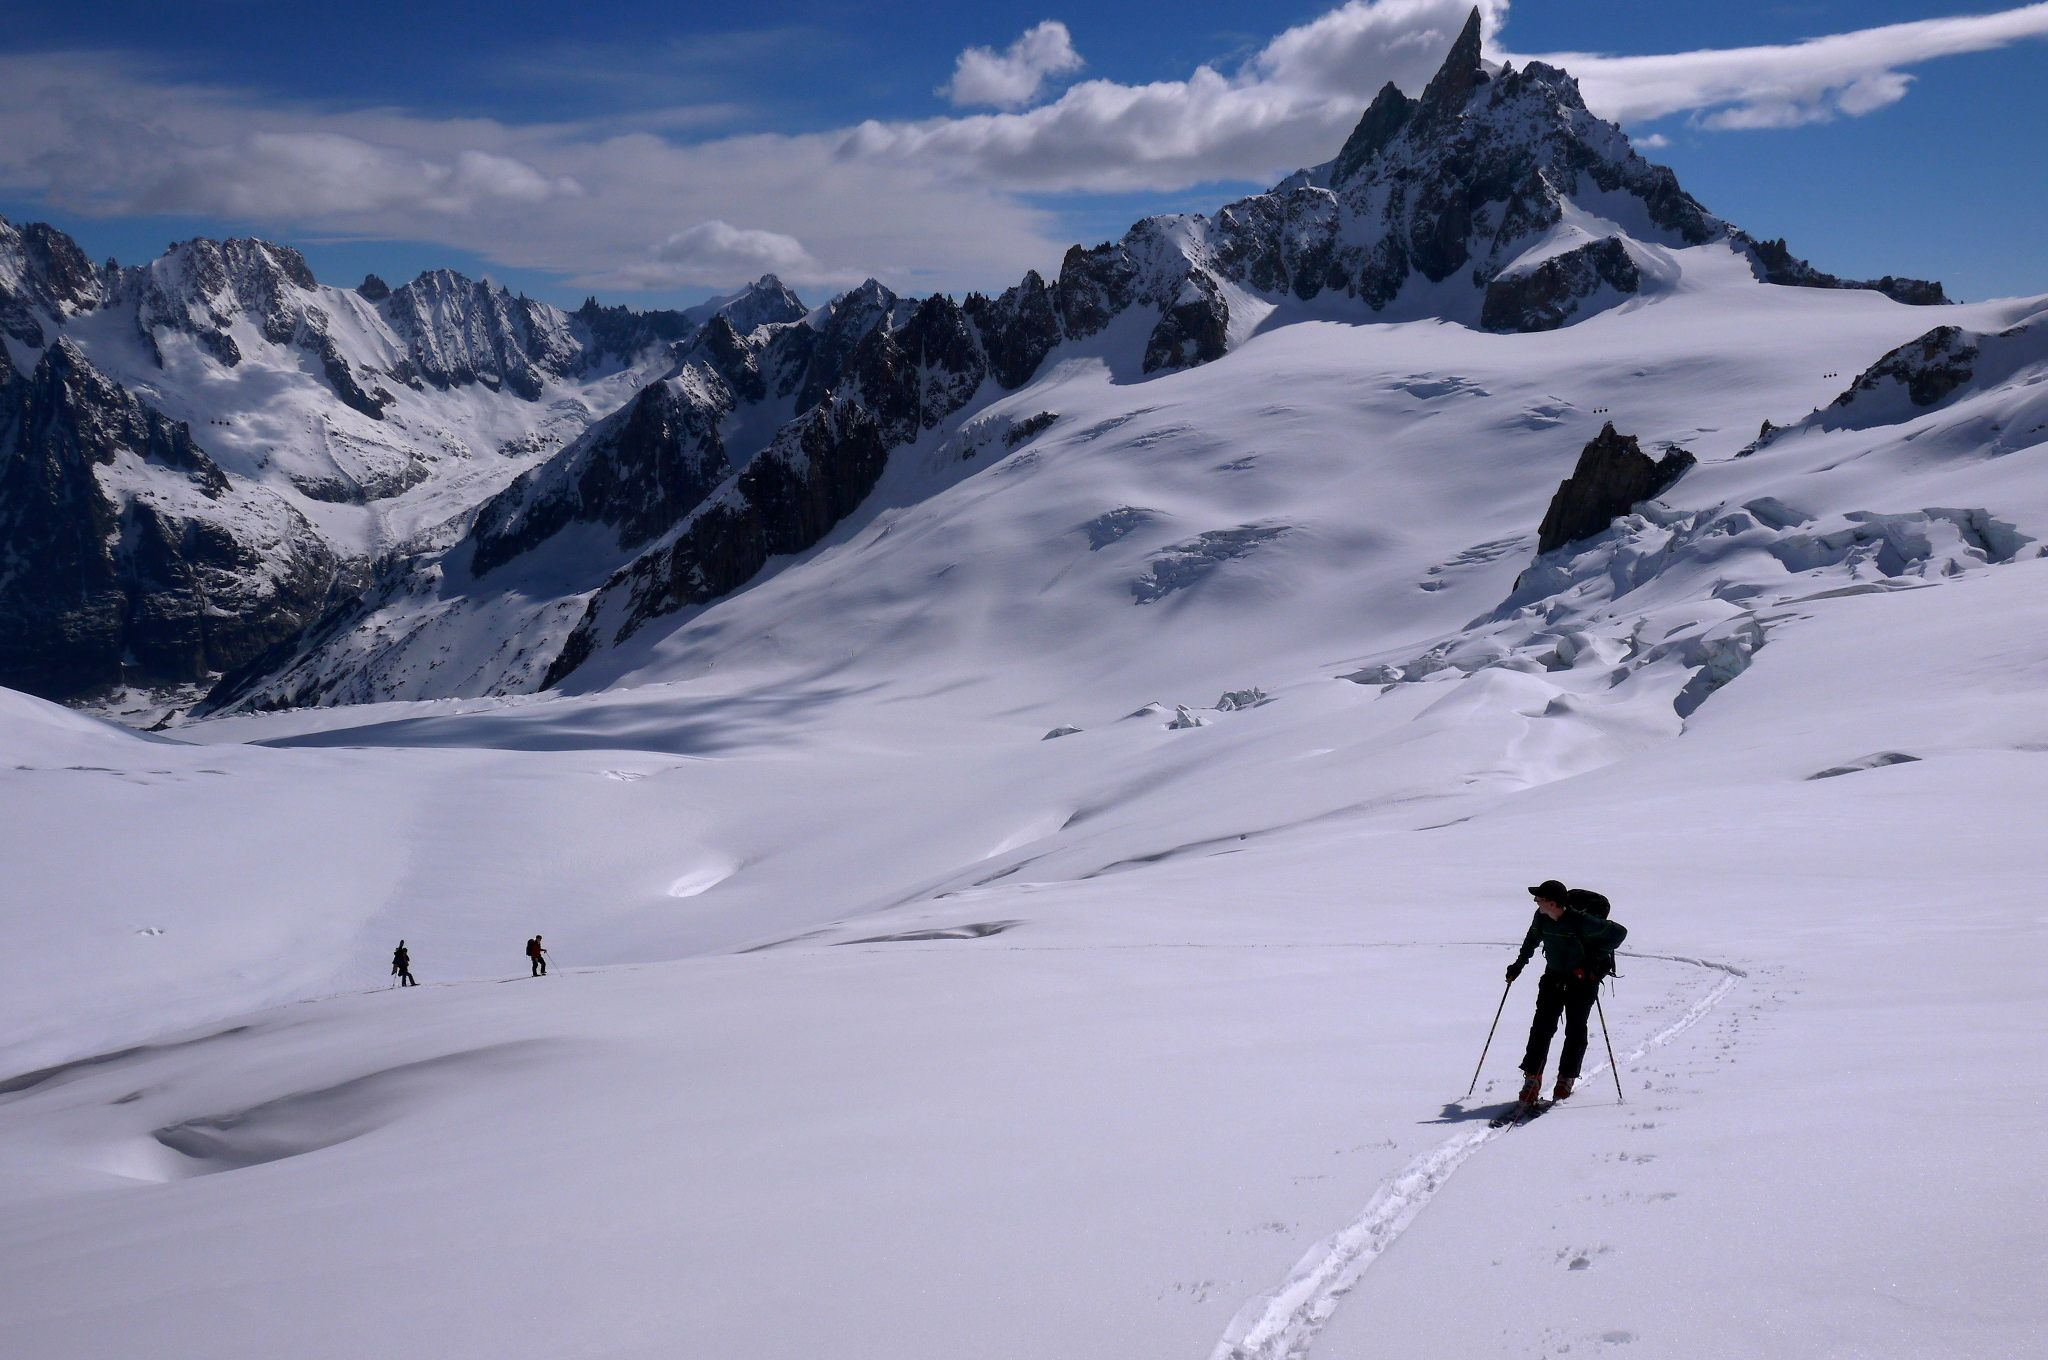 Skinning up to the Tour ronde, dent du geant in the distance